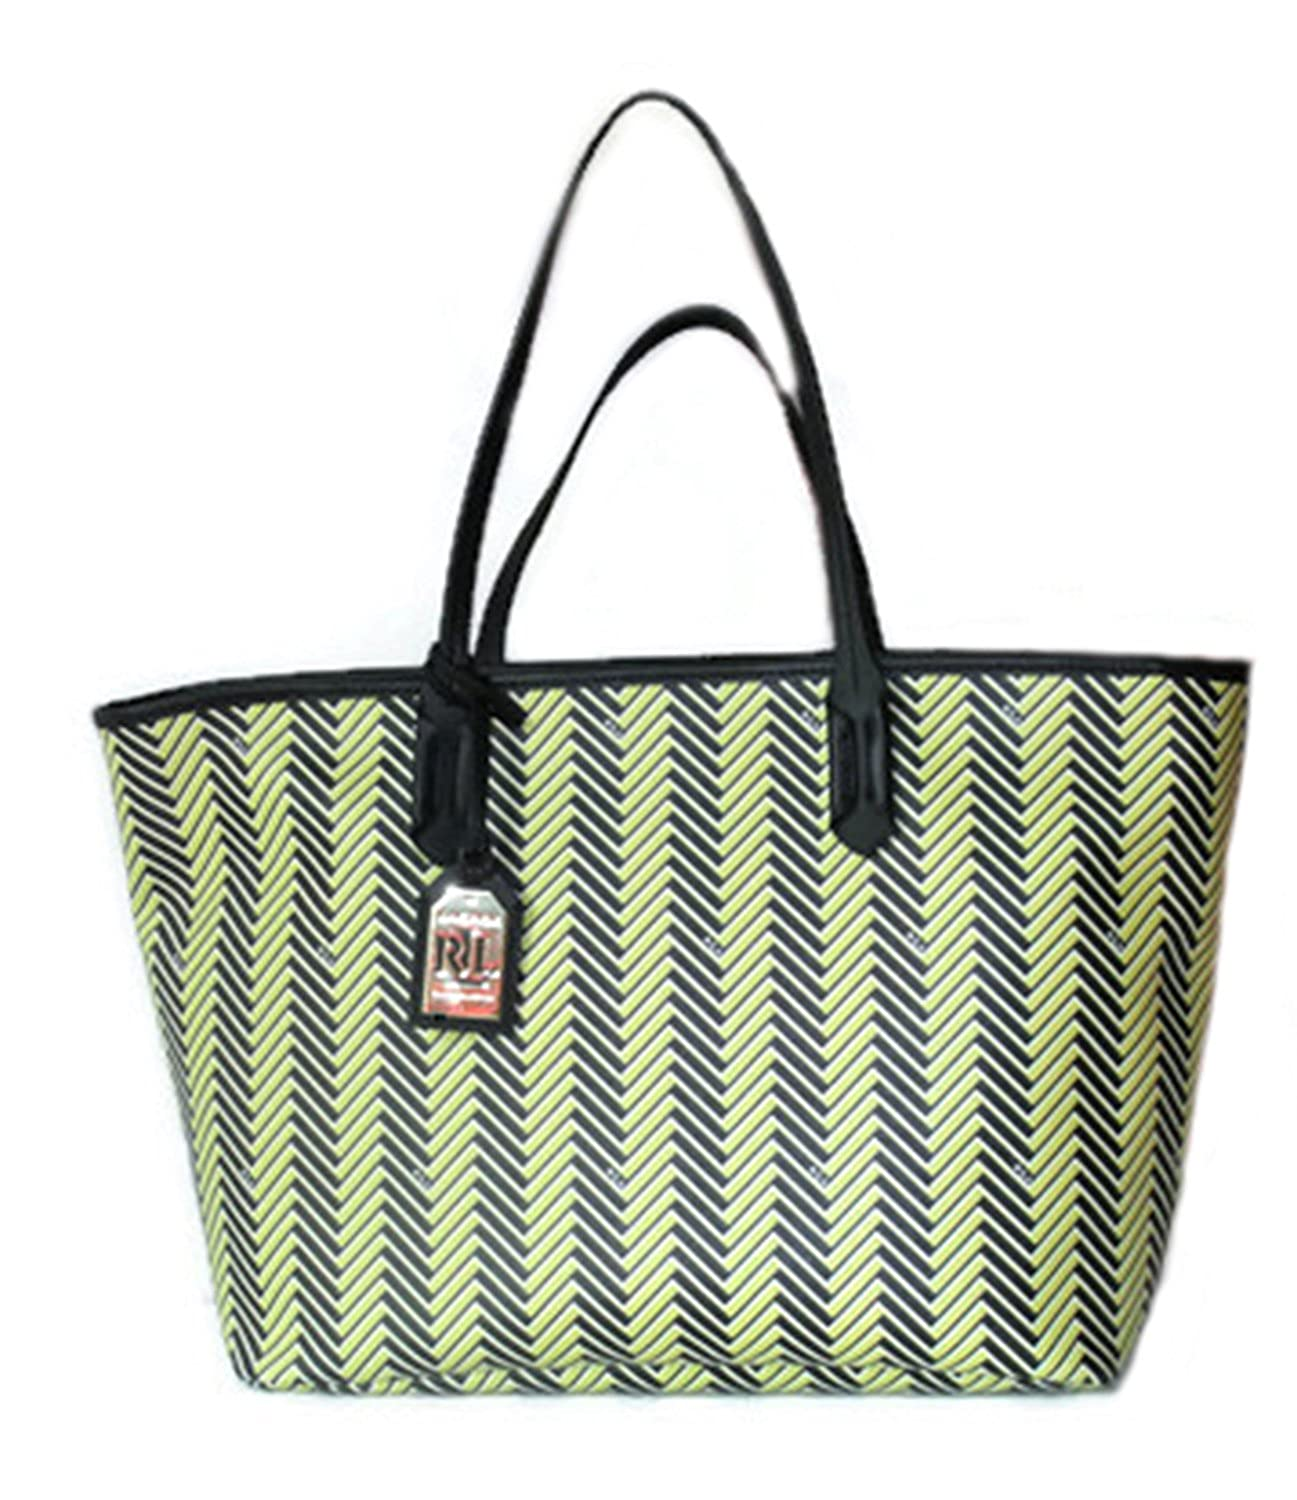 3ccbbb1eba49 Amazon.com  Ralph Lauren Handbag Boswell Classic Faux Leather Tote Citron  Black Large RRL Bag Striped Herringbone  Shoes